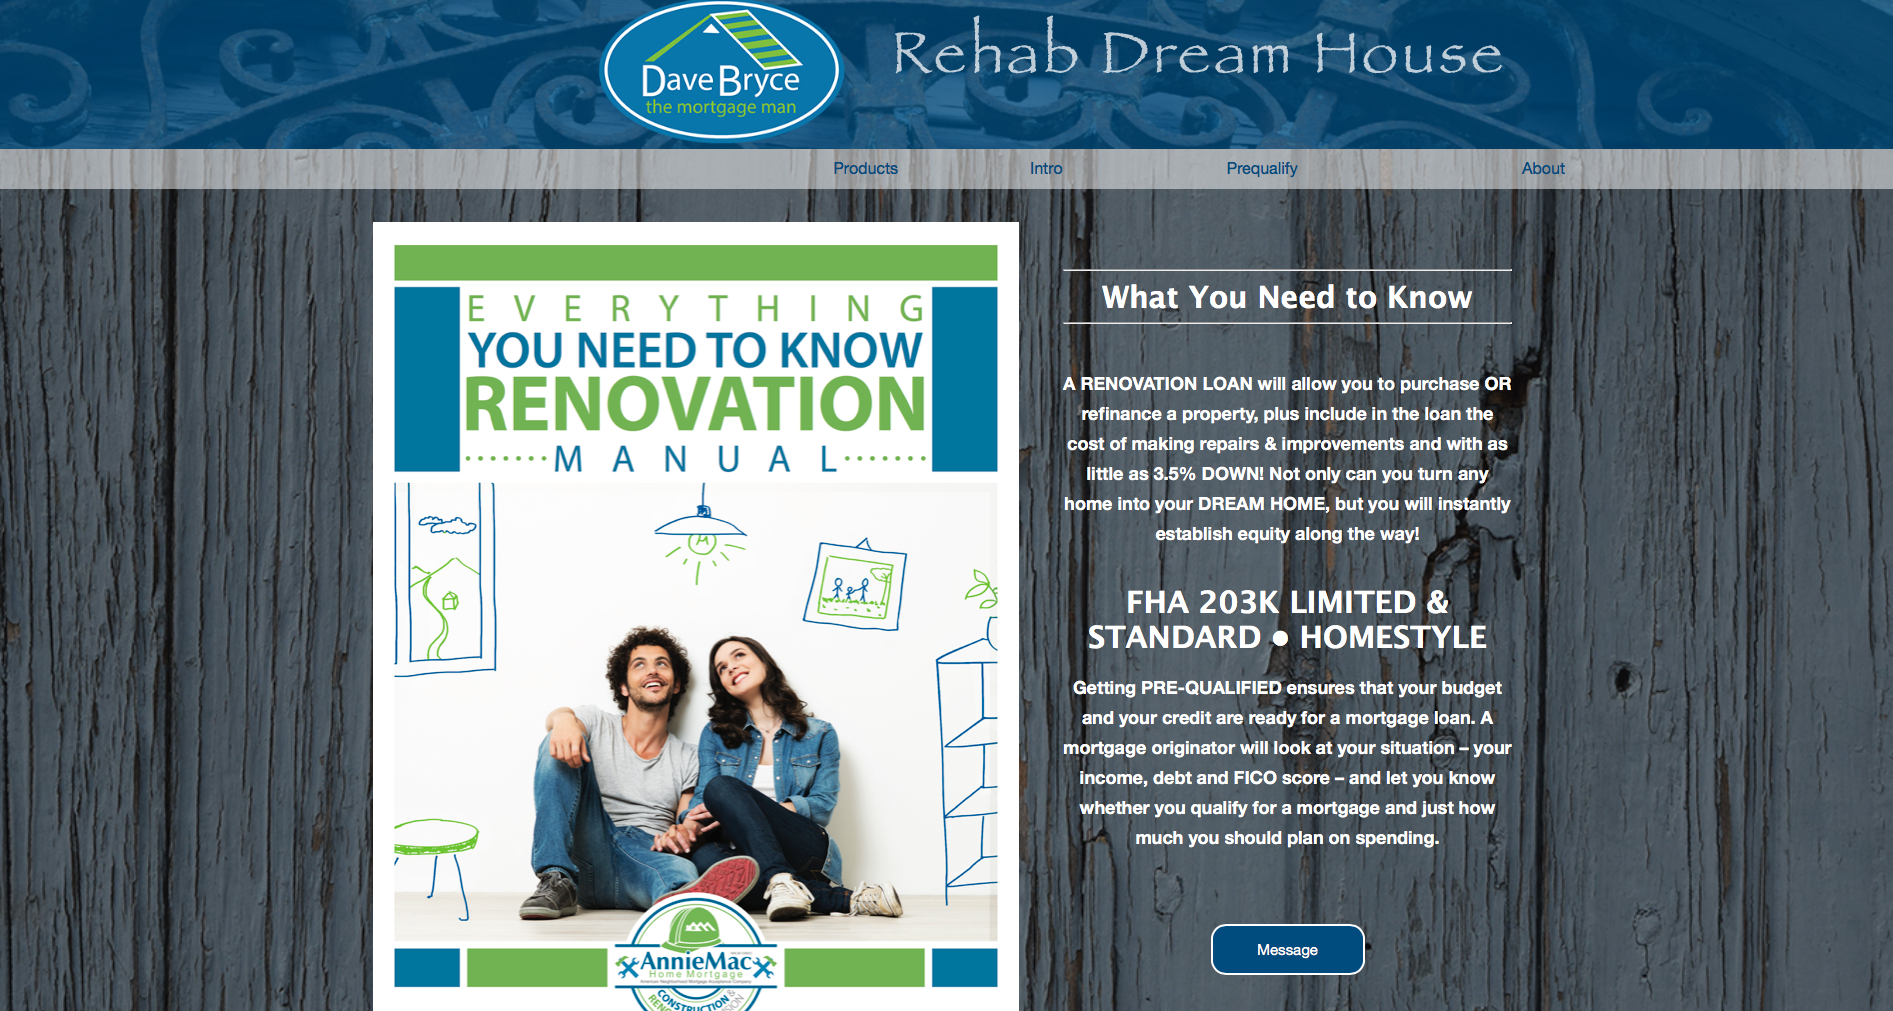 http://www.rehabdreamhouse.com/products/products.html